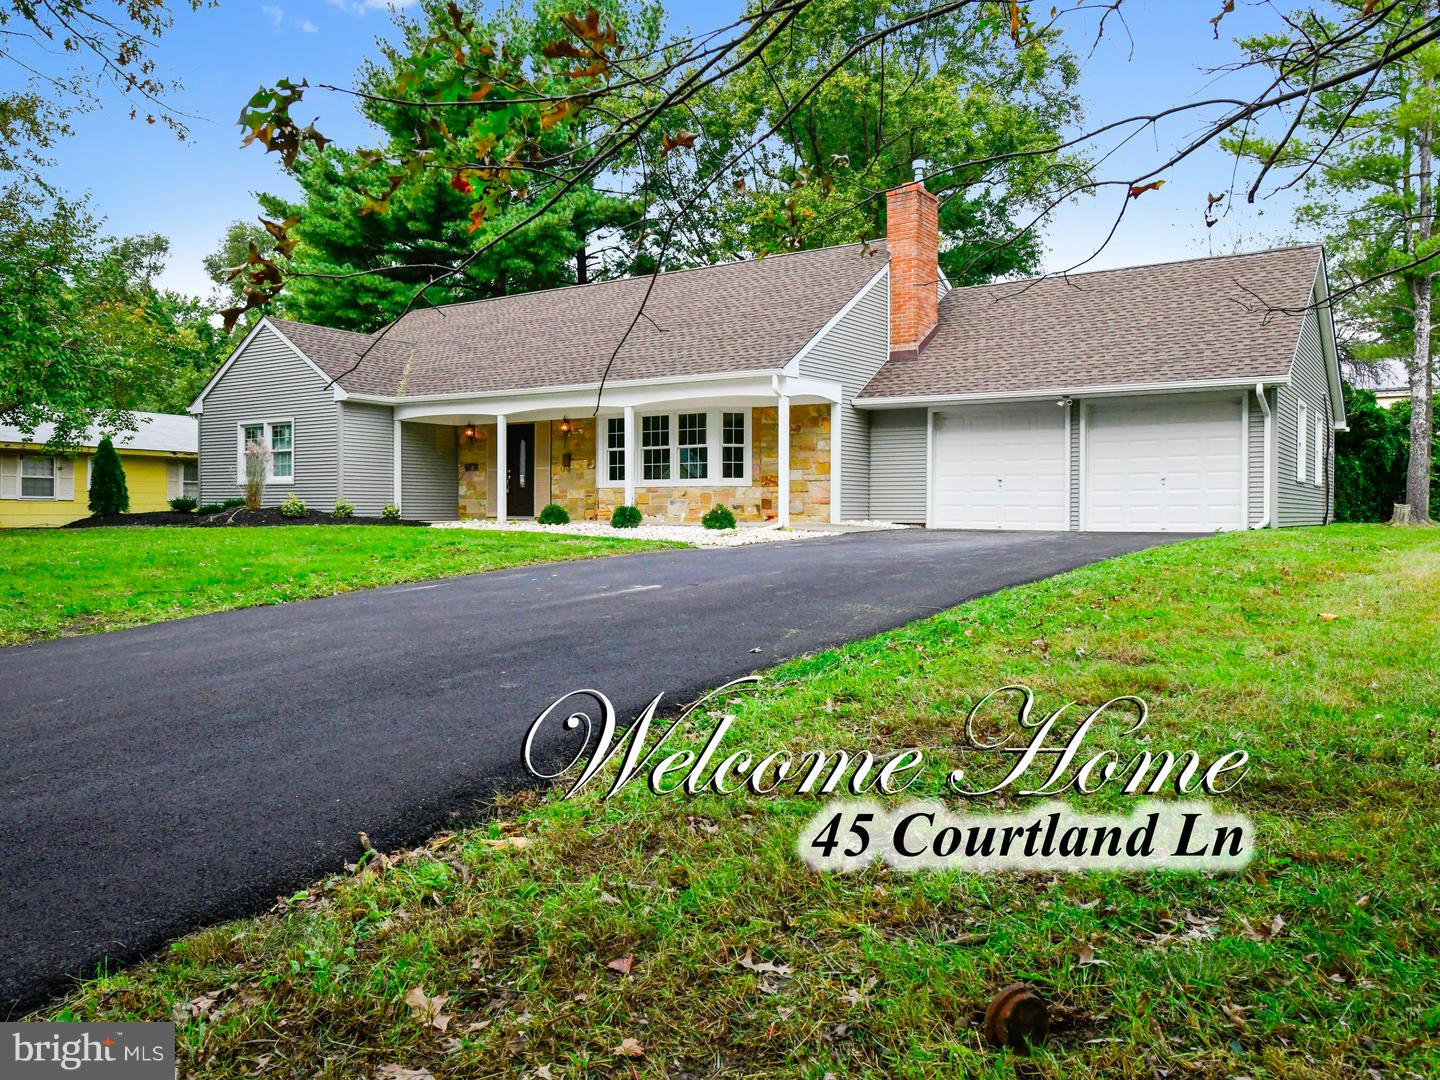 45 COURTLAND LANE, WILLINGBORO, NJ 08046